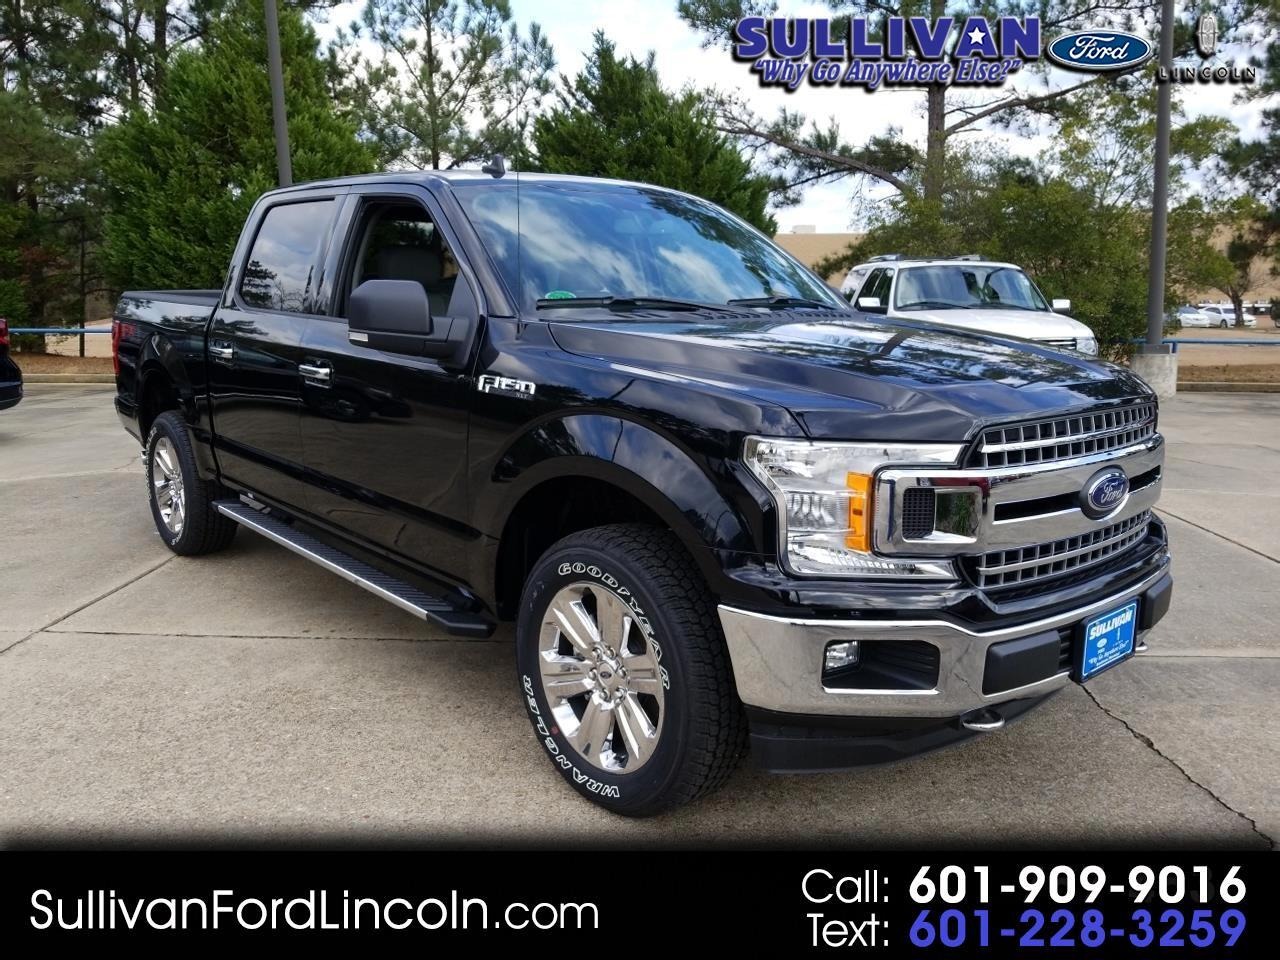 2019 Ford F-150 SuperCrew 139